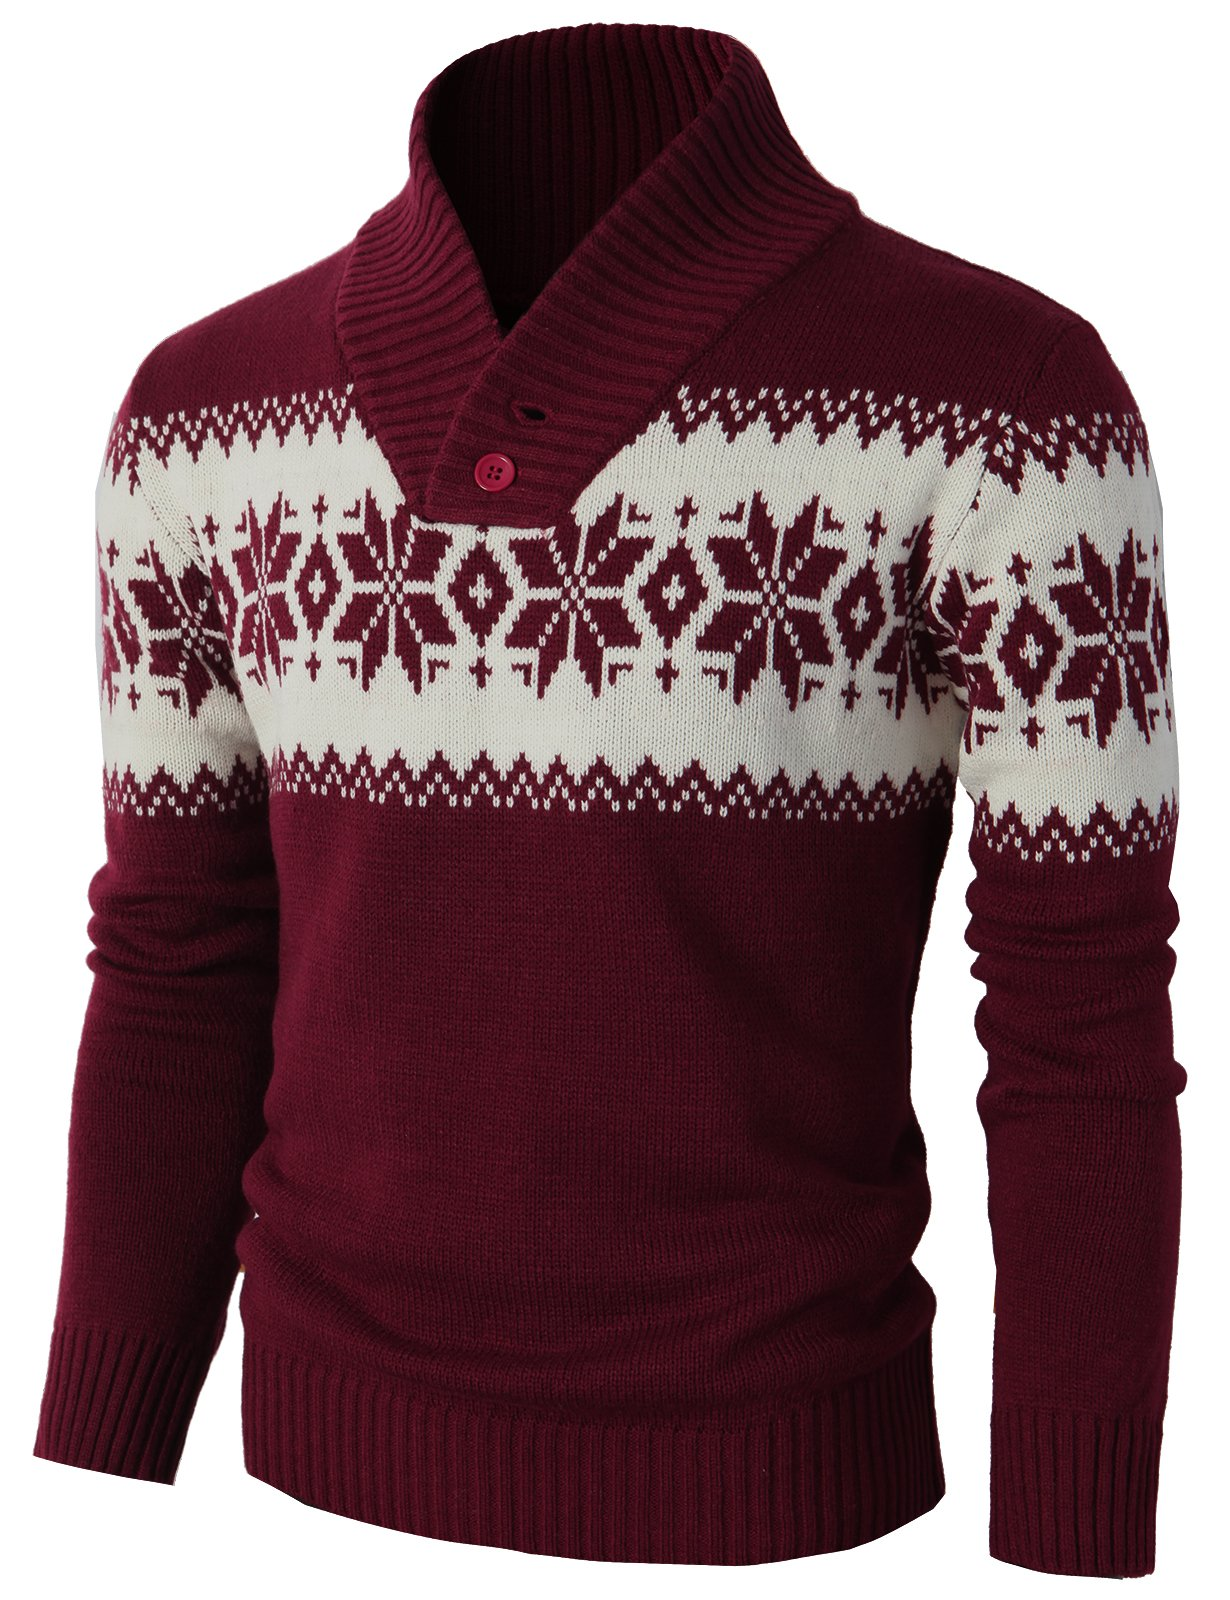 Men's Casual Slim Fit Knitted Pullover Sweaters of Various Christmas Pattern 3